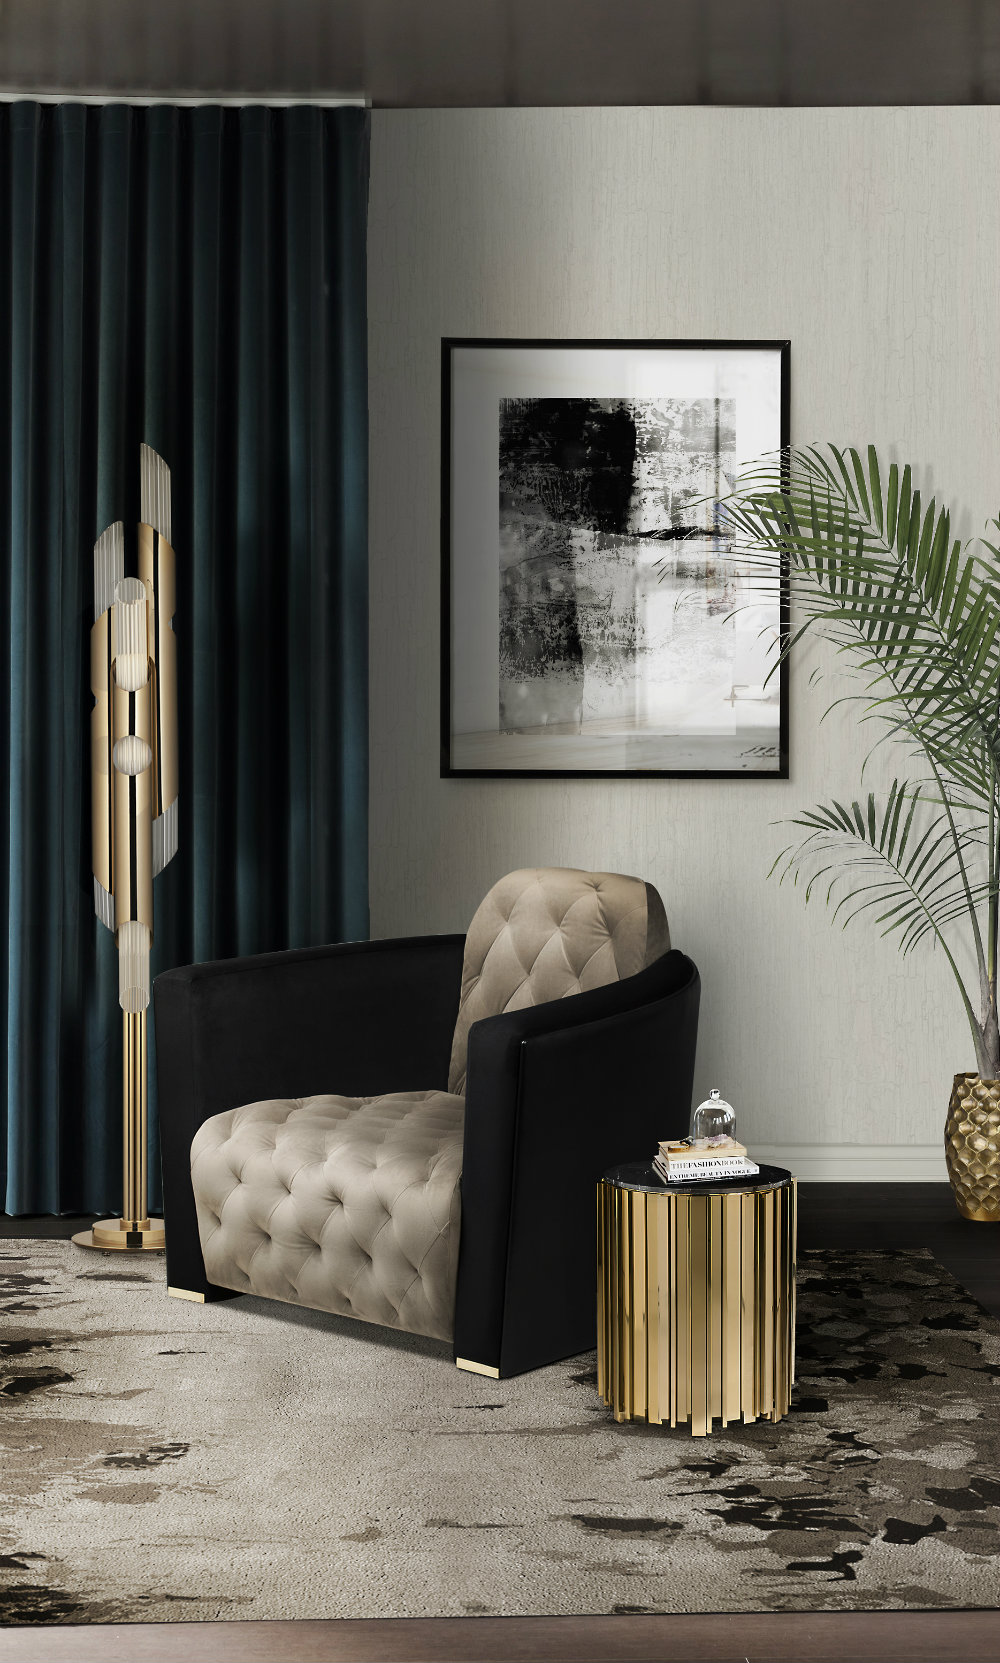 How to Improve Your Home Using Golden Light Fixtures 06 Golden Light Fixtures How to Improve Your Home Using Golden Light Fixtures How to Improve Your Home Using Golden Light Fixtures 06